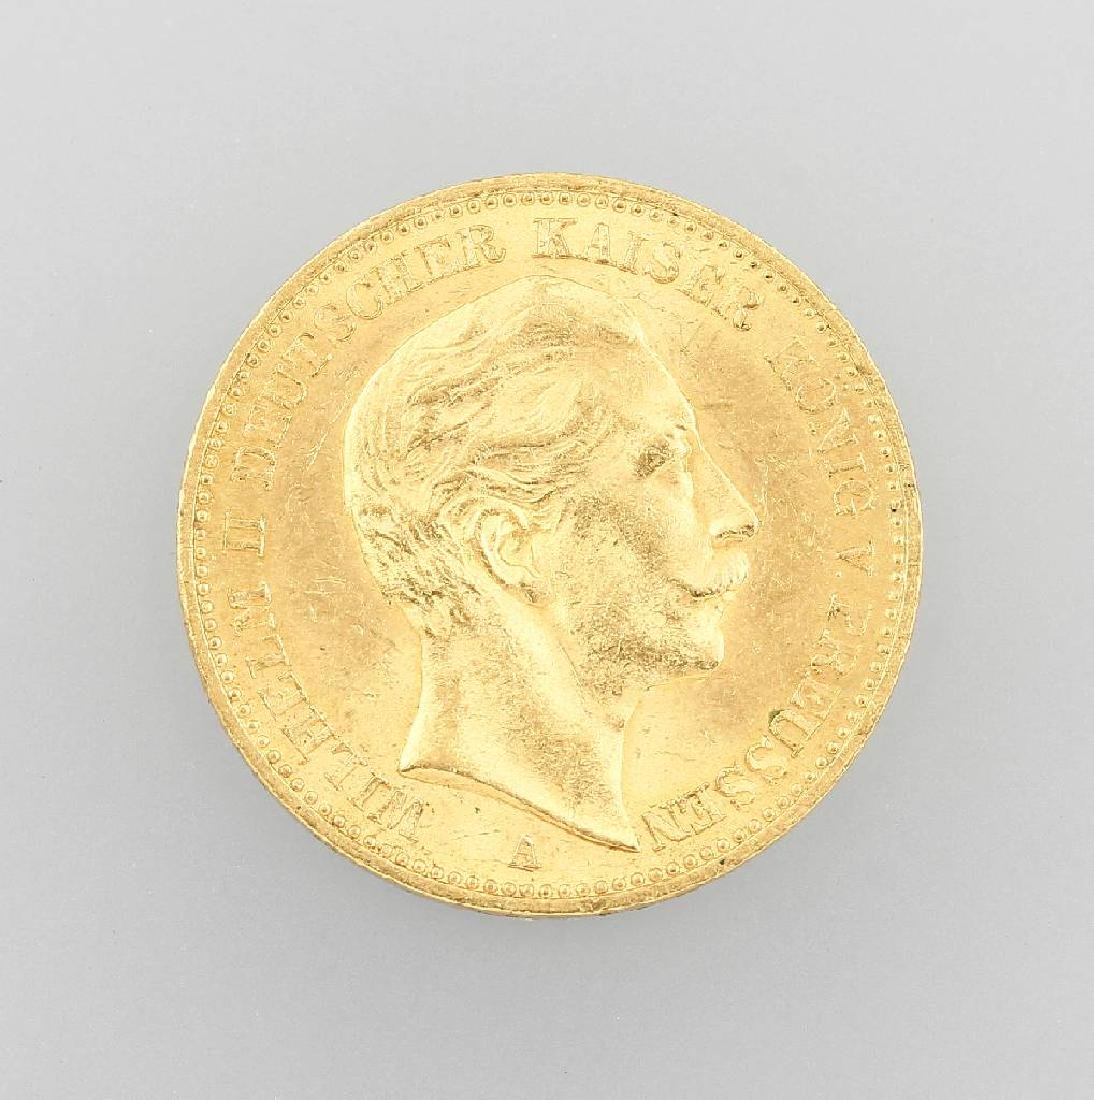 Gold coin, 20 Mark, German Reich, 1899